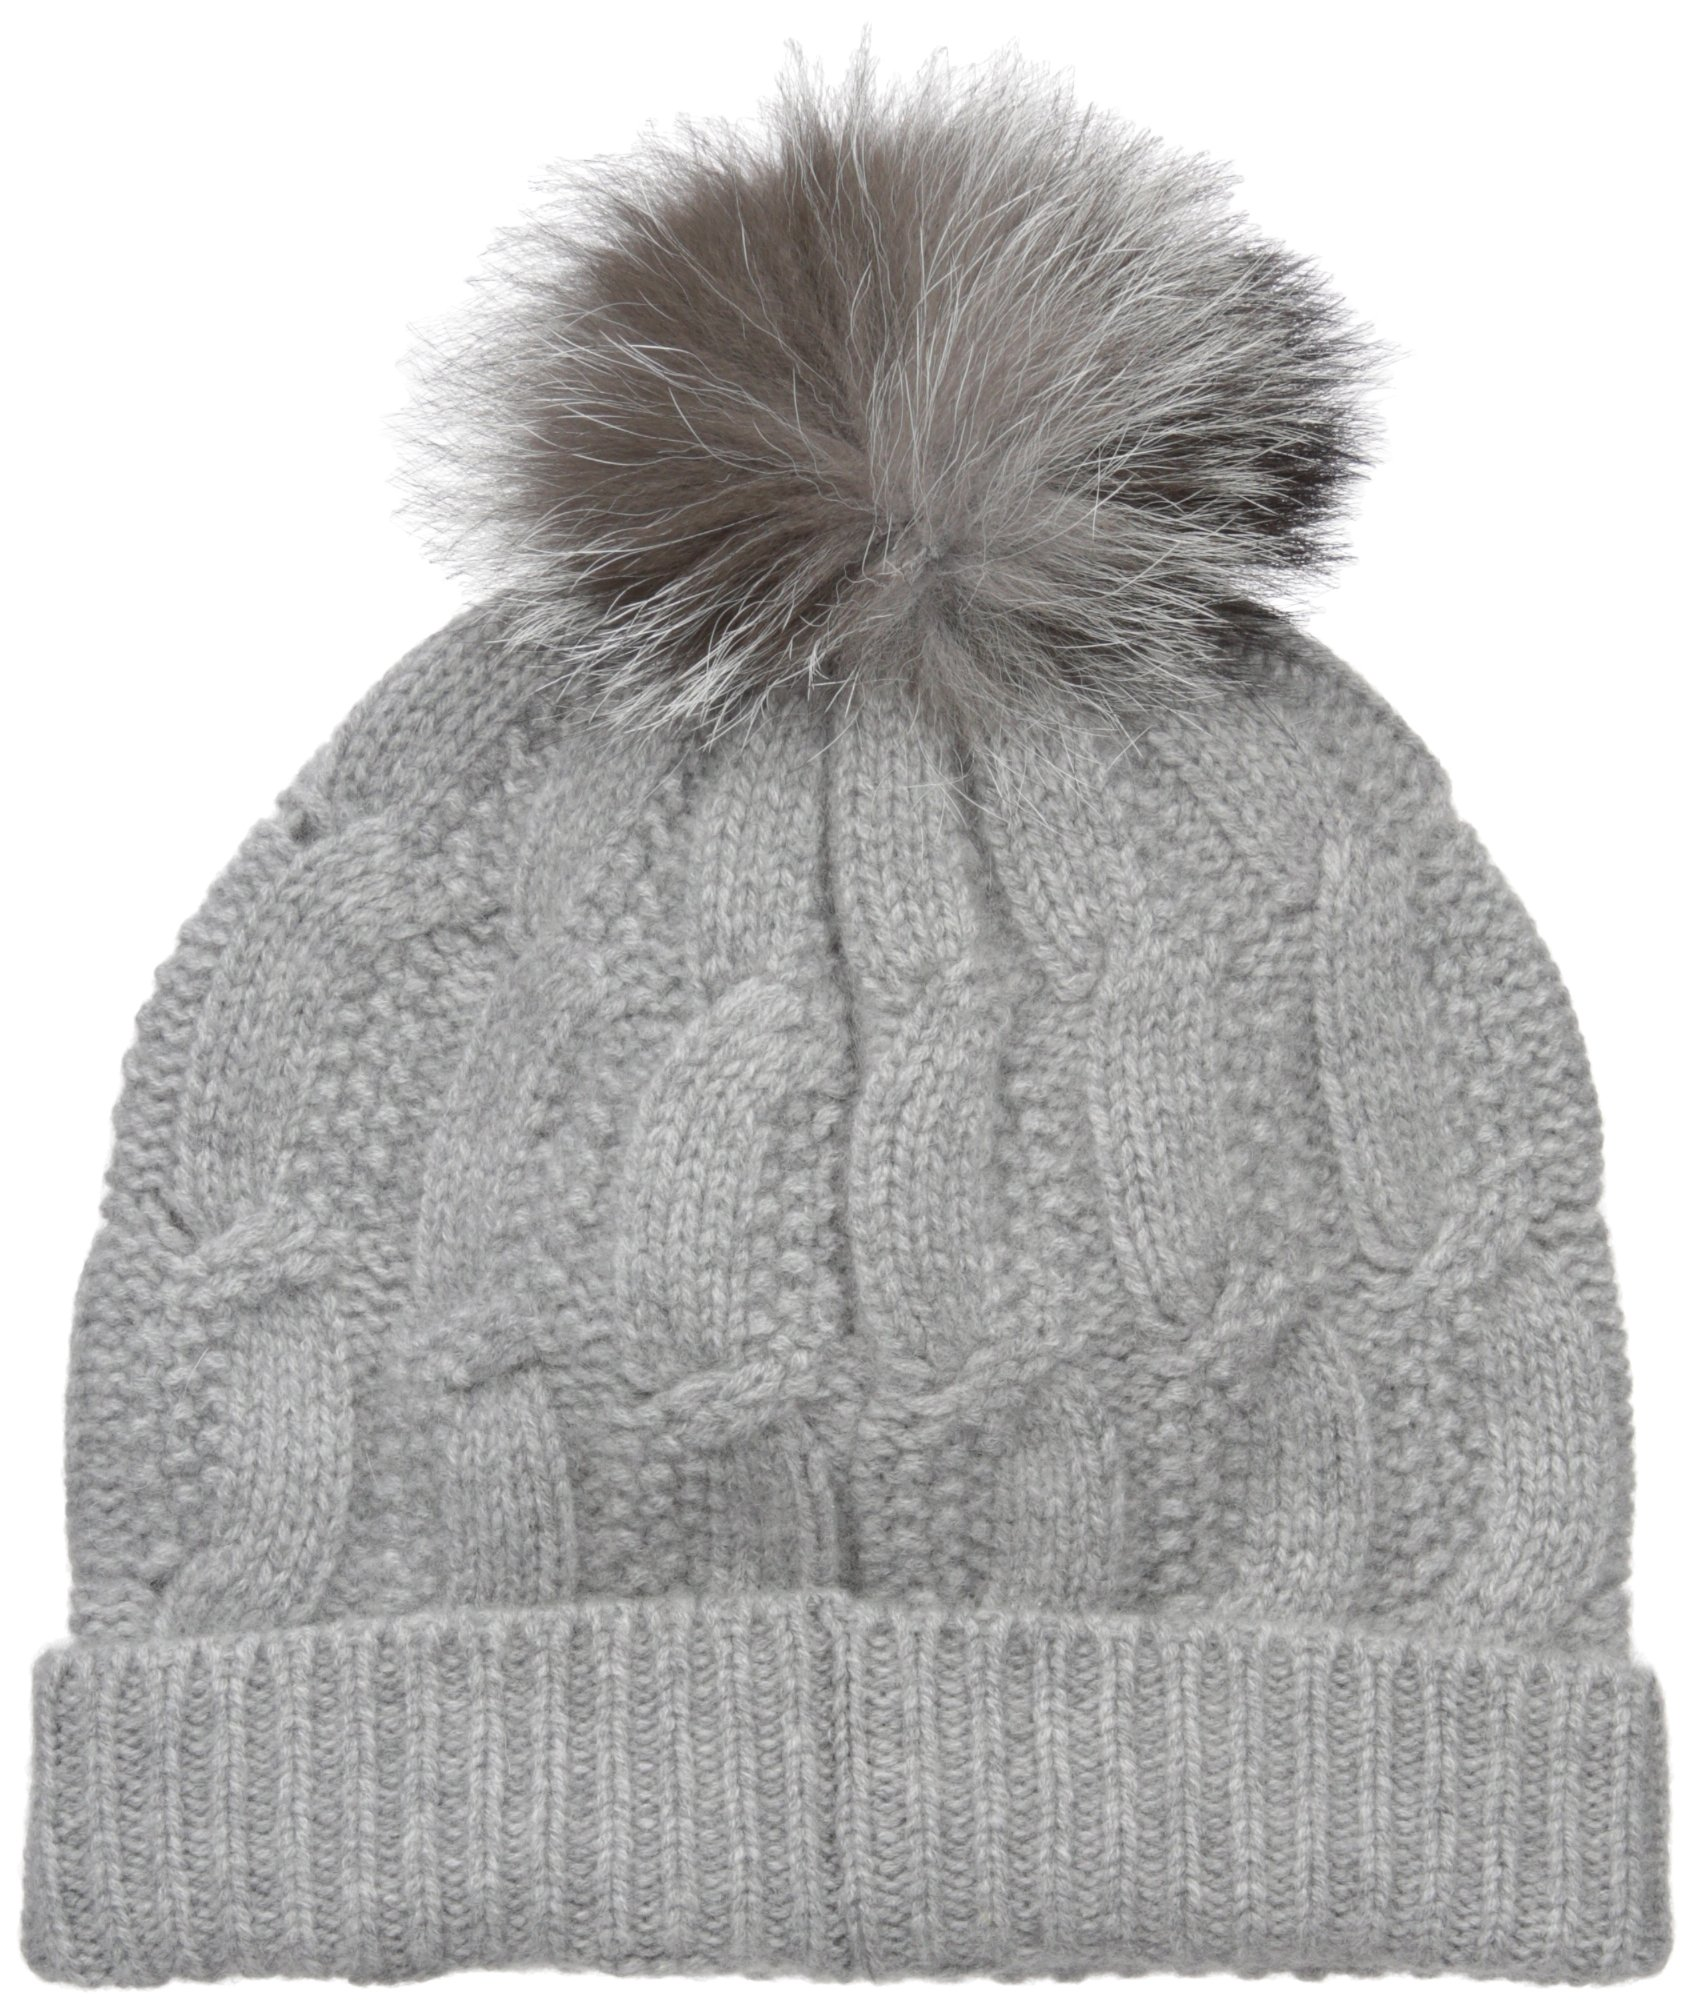 Sofia Cashmere Women's 100% Cashmere Cable Seed Stitch Hat With Fox Fur Pom, Elephant Grey, One by Sofia Cashmere